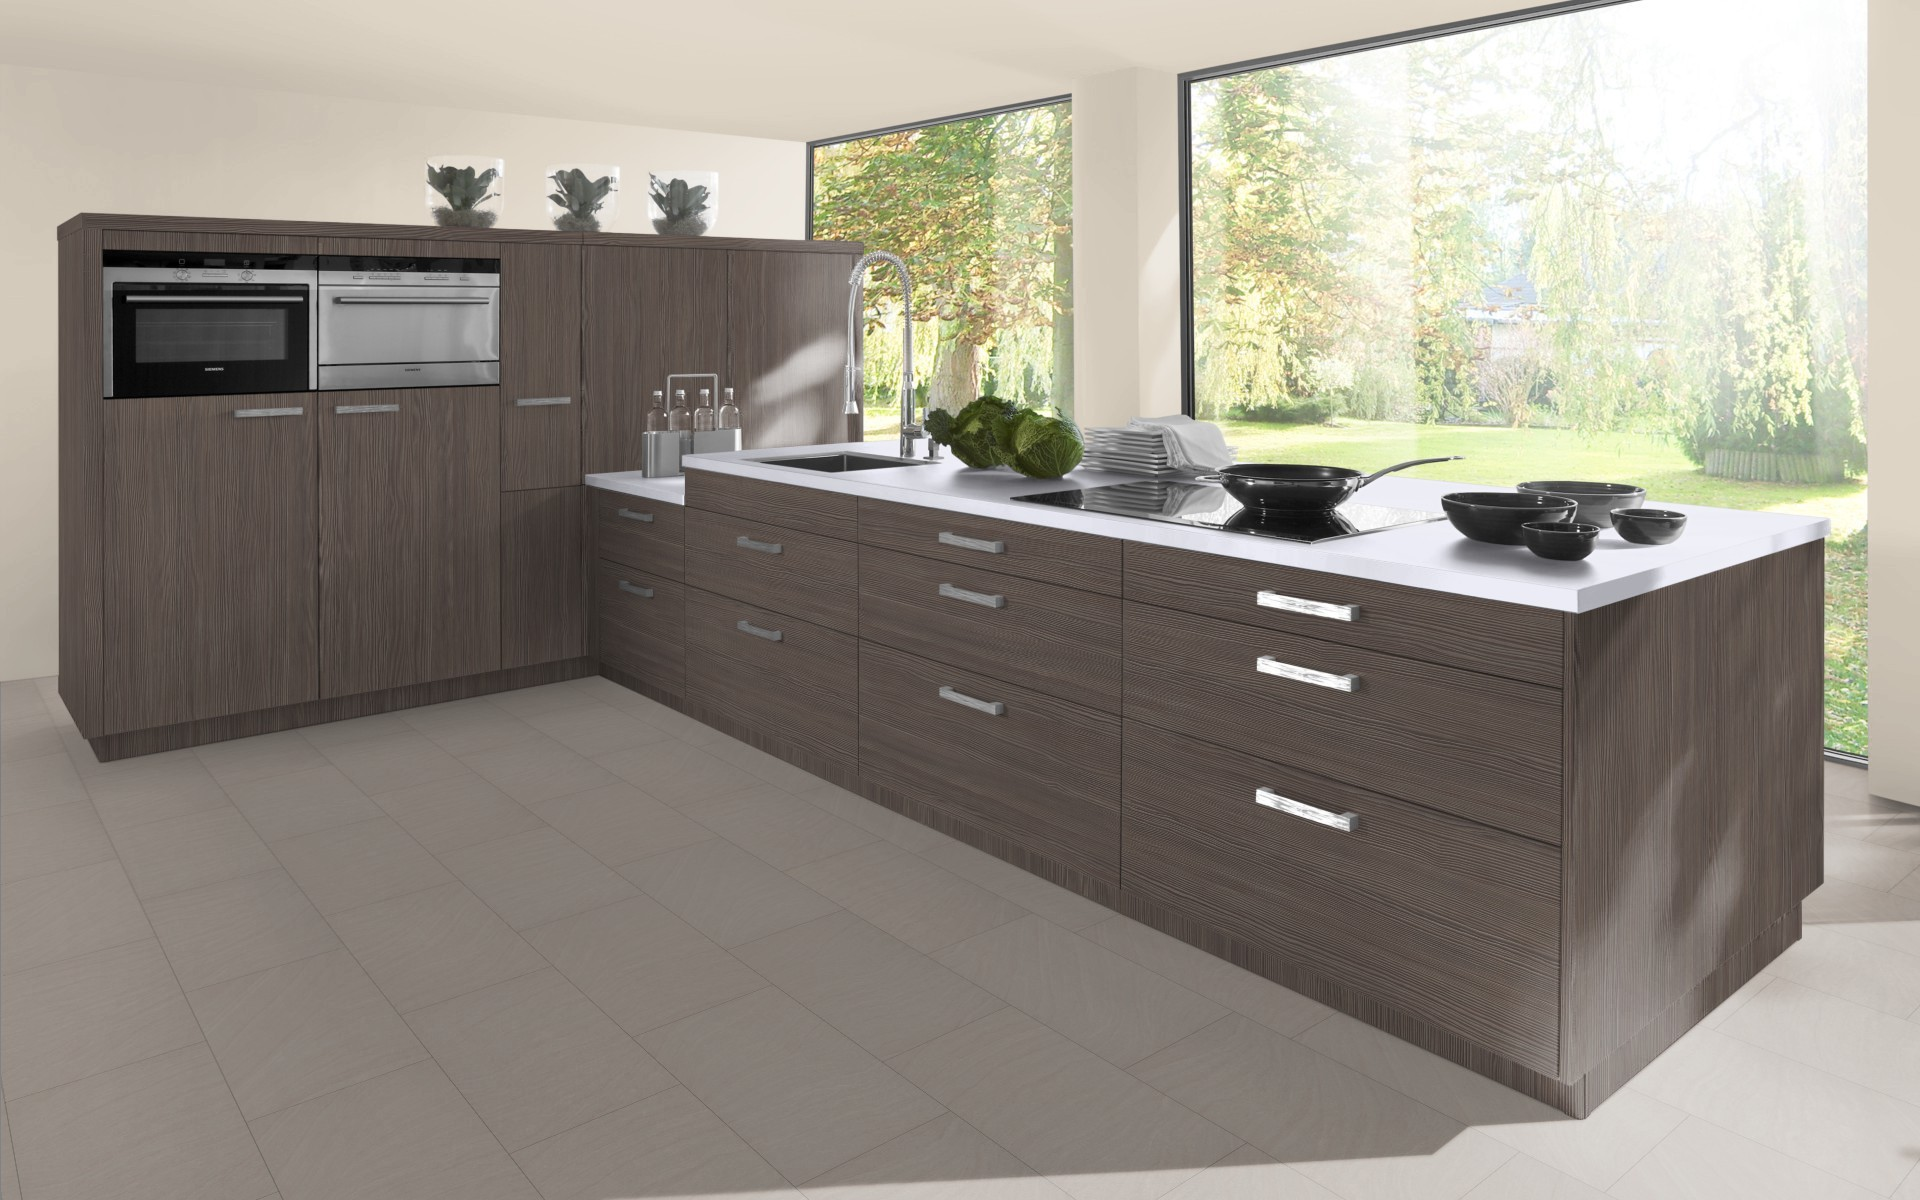 Textured Wood Kitchen Door in Brown / Grey Avola